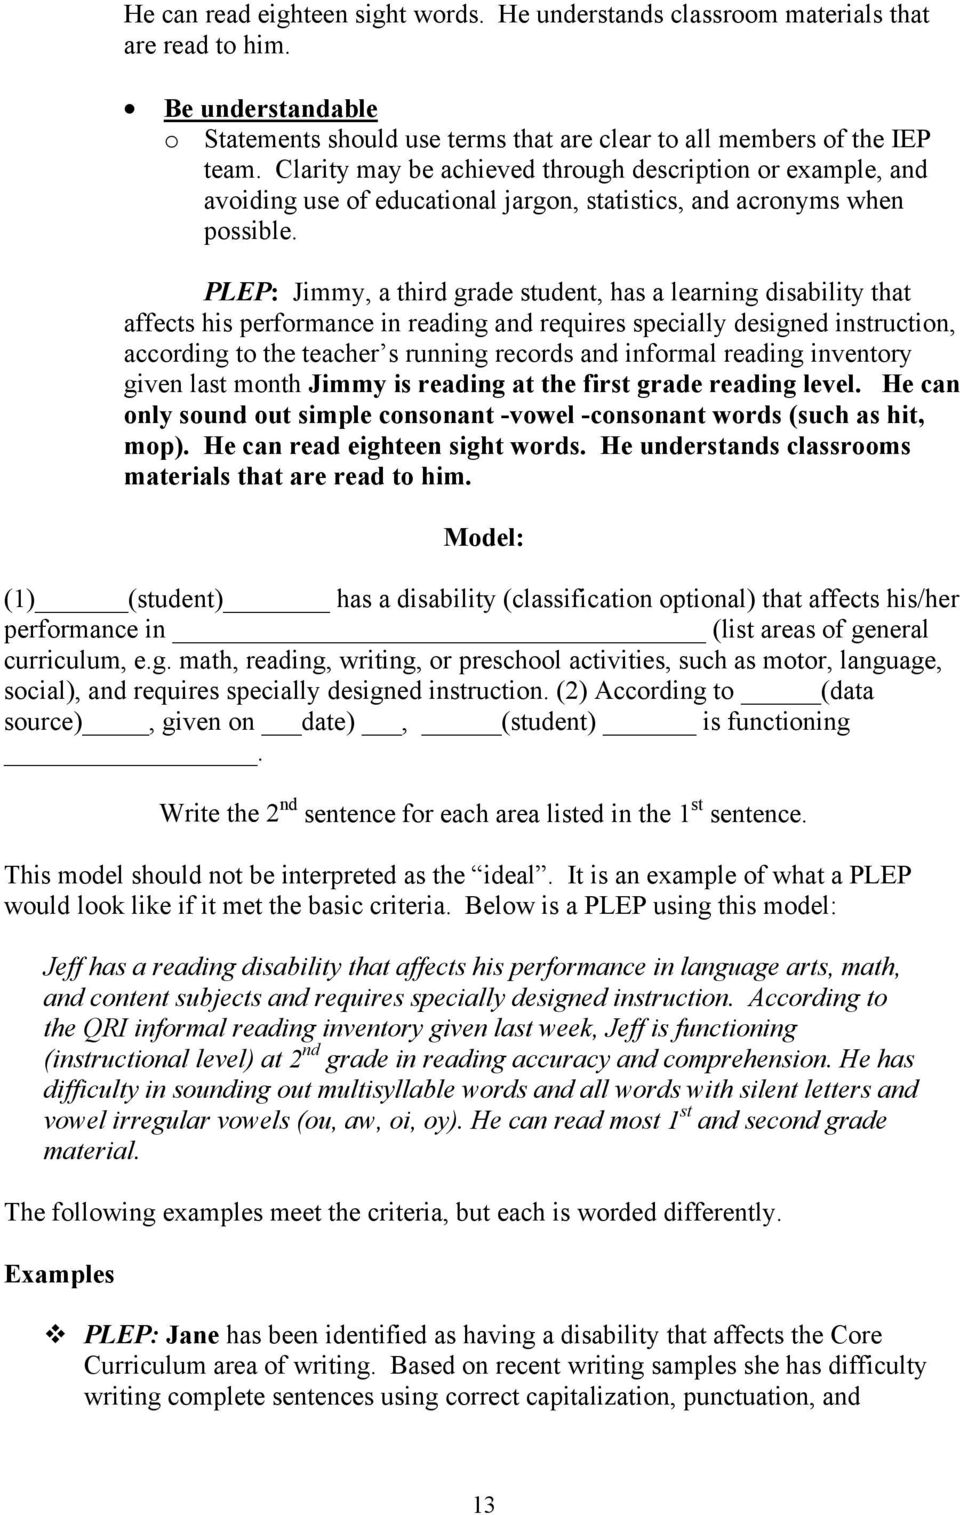 Tools For Writing Standards Based Ieps Pdf Free Download